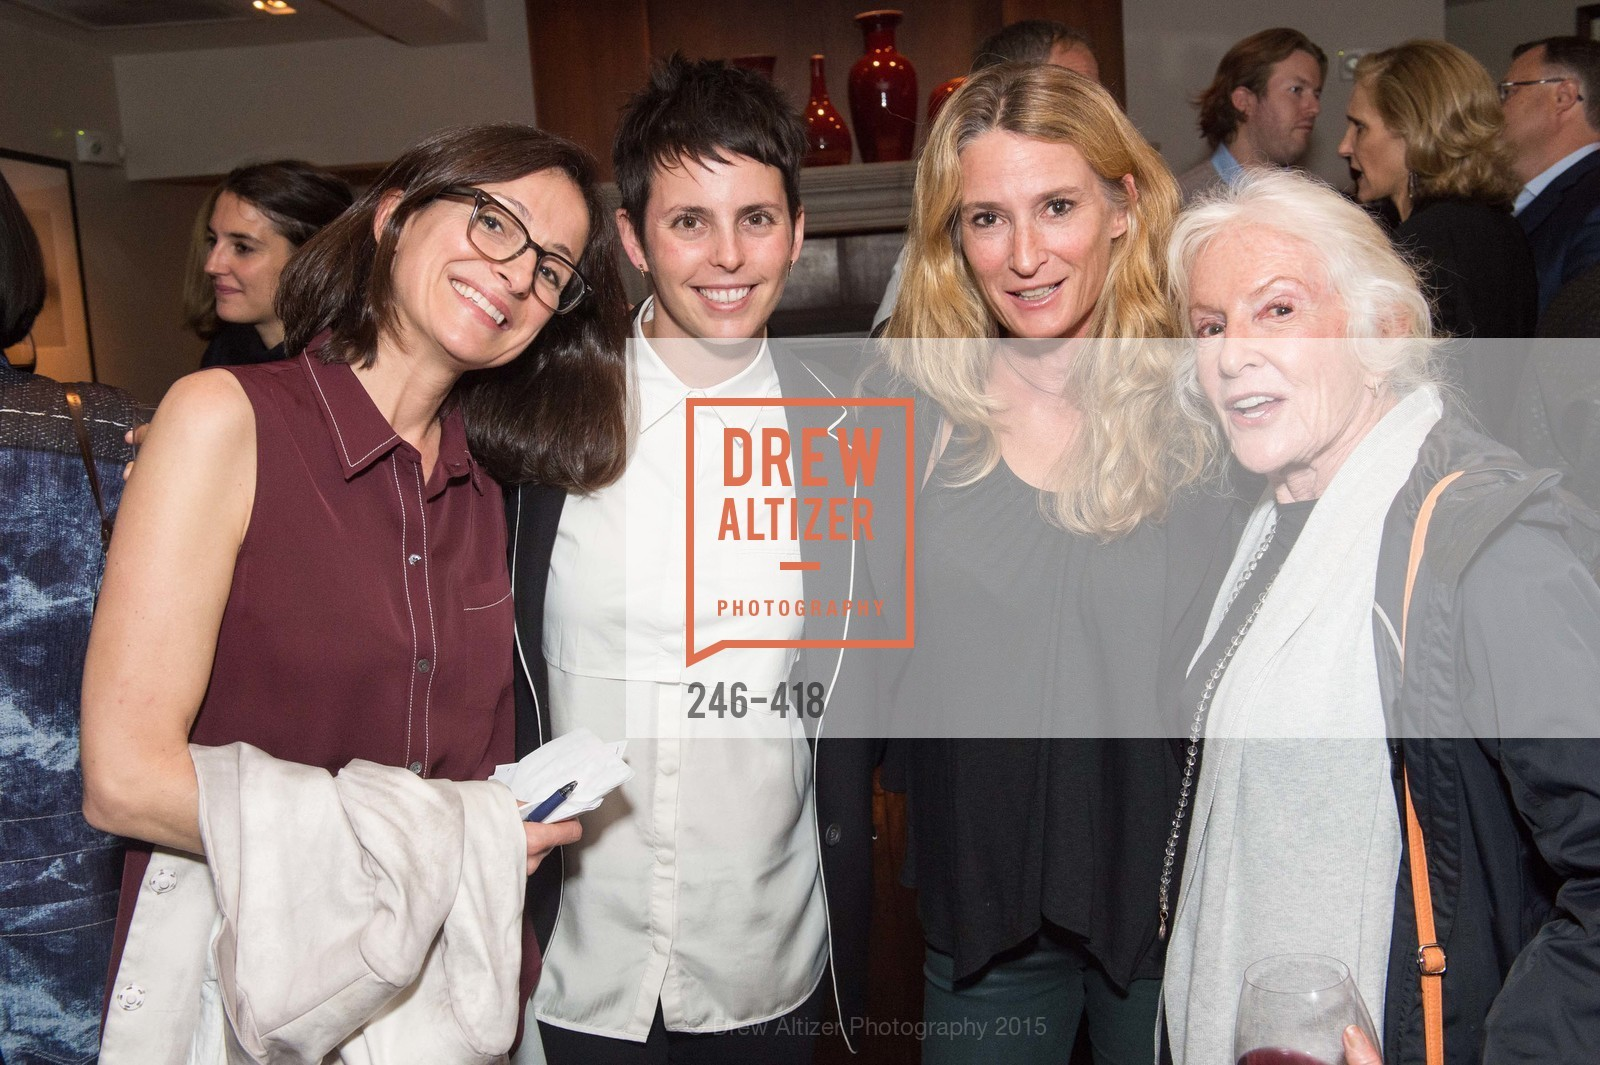 Sarah Thornton, Jessica Silverman, Melinda Johnson, Dasi Herz, Artsy and Sotheby's Village Pub Dinner, Village Pub, October 27th, 2015,Drew Altizer, Drew Altizer Photography, full-service agency, private events, San Francisco photographer, photographer california